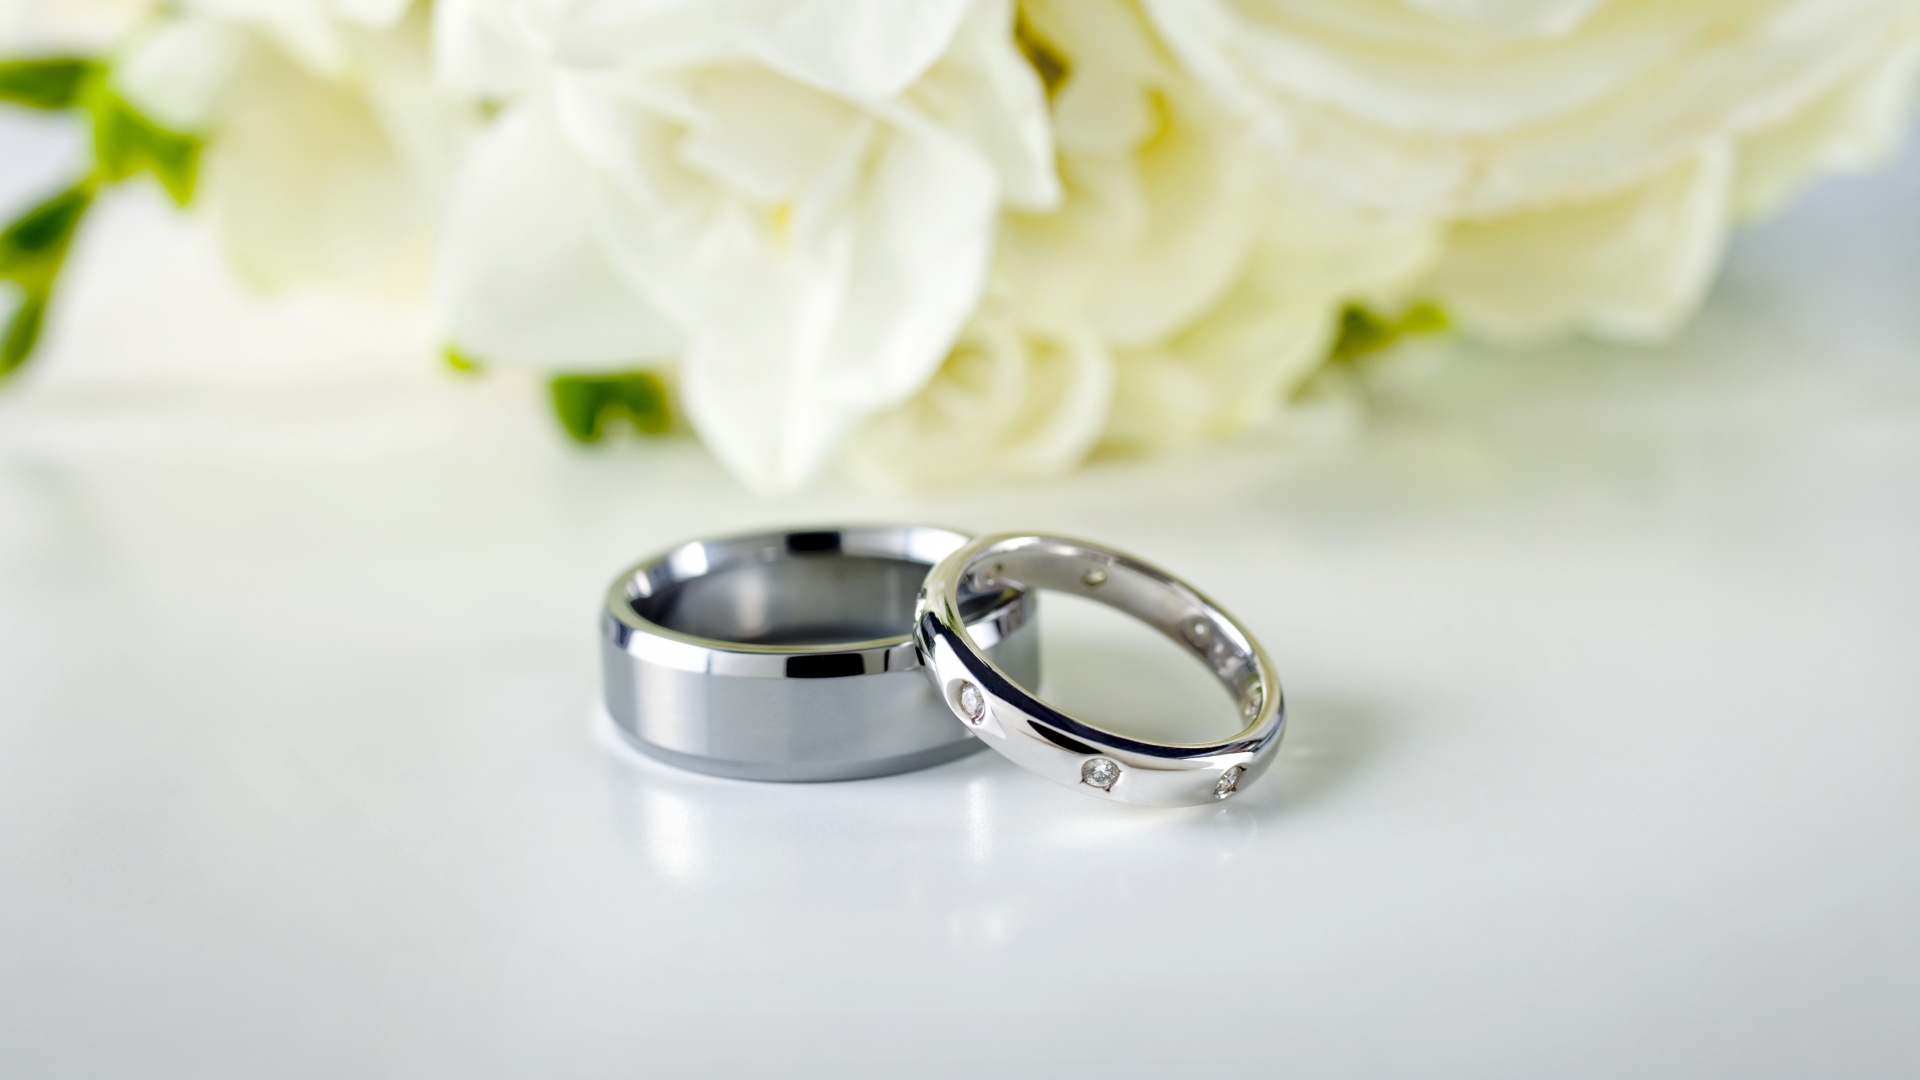 Download Wallpaper 1920x1080 Rings Couple Wedding Silver Flowers Full Hd 1080p Hd Background